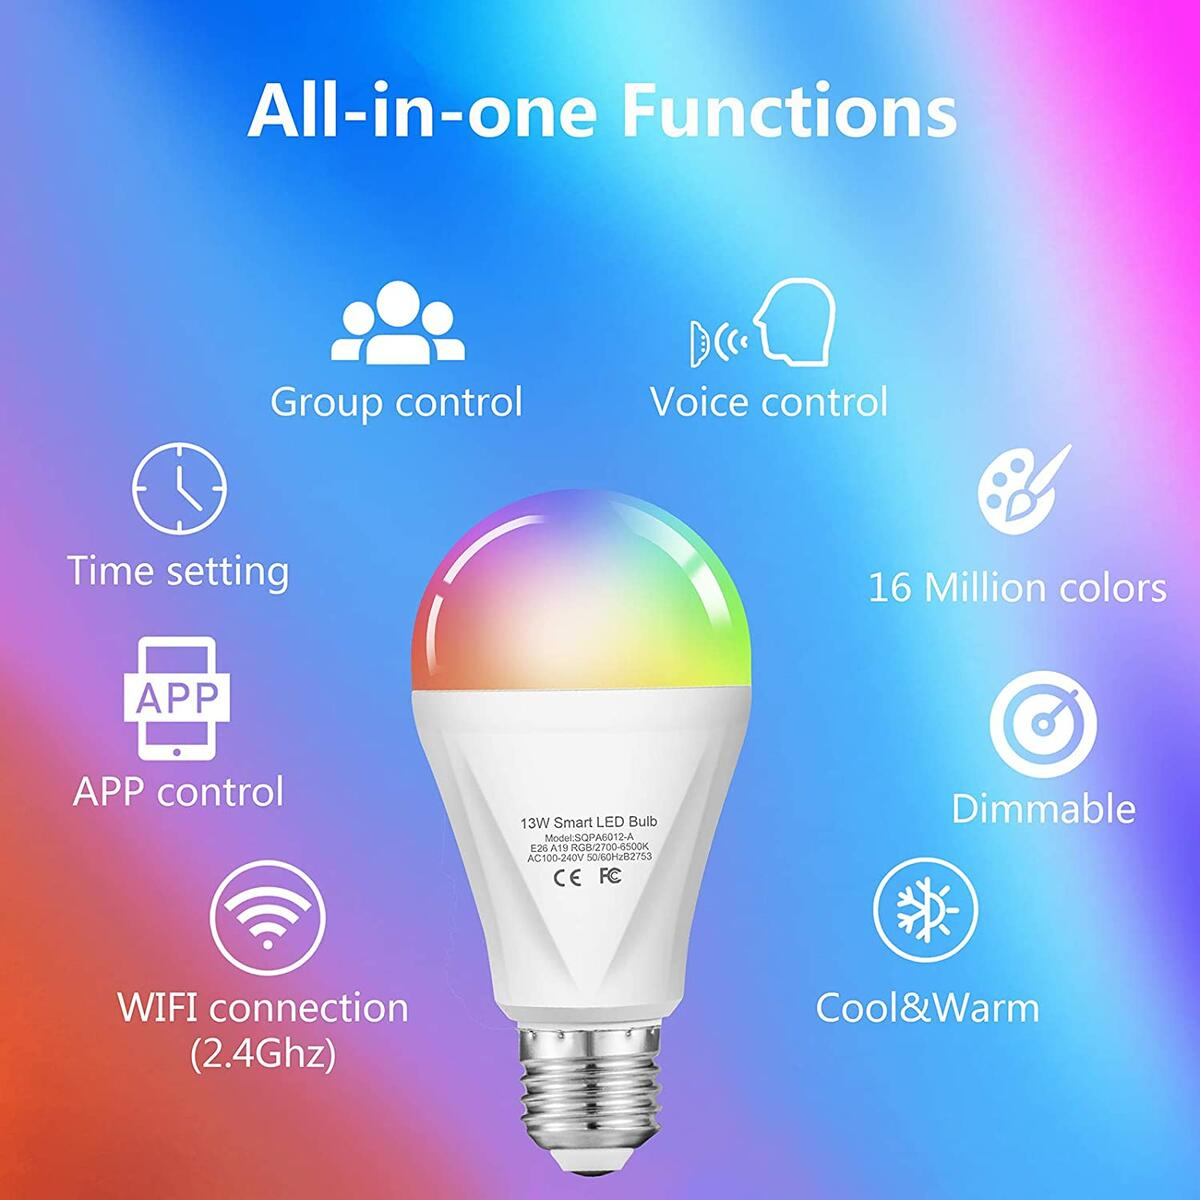 Alexa Smart WiFi Light Bulb, 13W RGBCW Color Changing Led Bulb Compatible with Alexa Echo Google Home and Siri, 2700K-6500K 1300LM Dimmable A19 E26 120W Equivalent, No Hub Required - 2 Pack